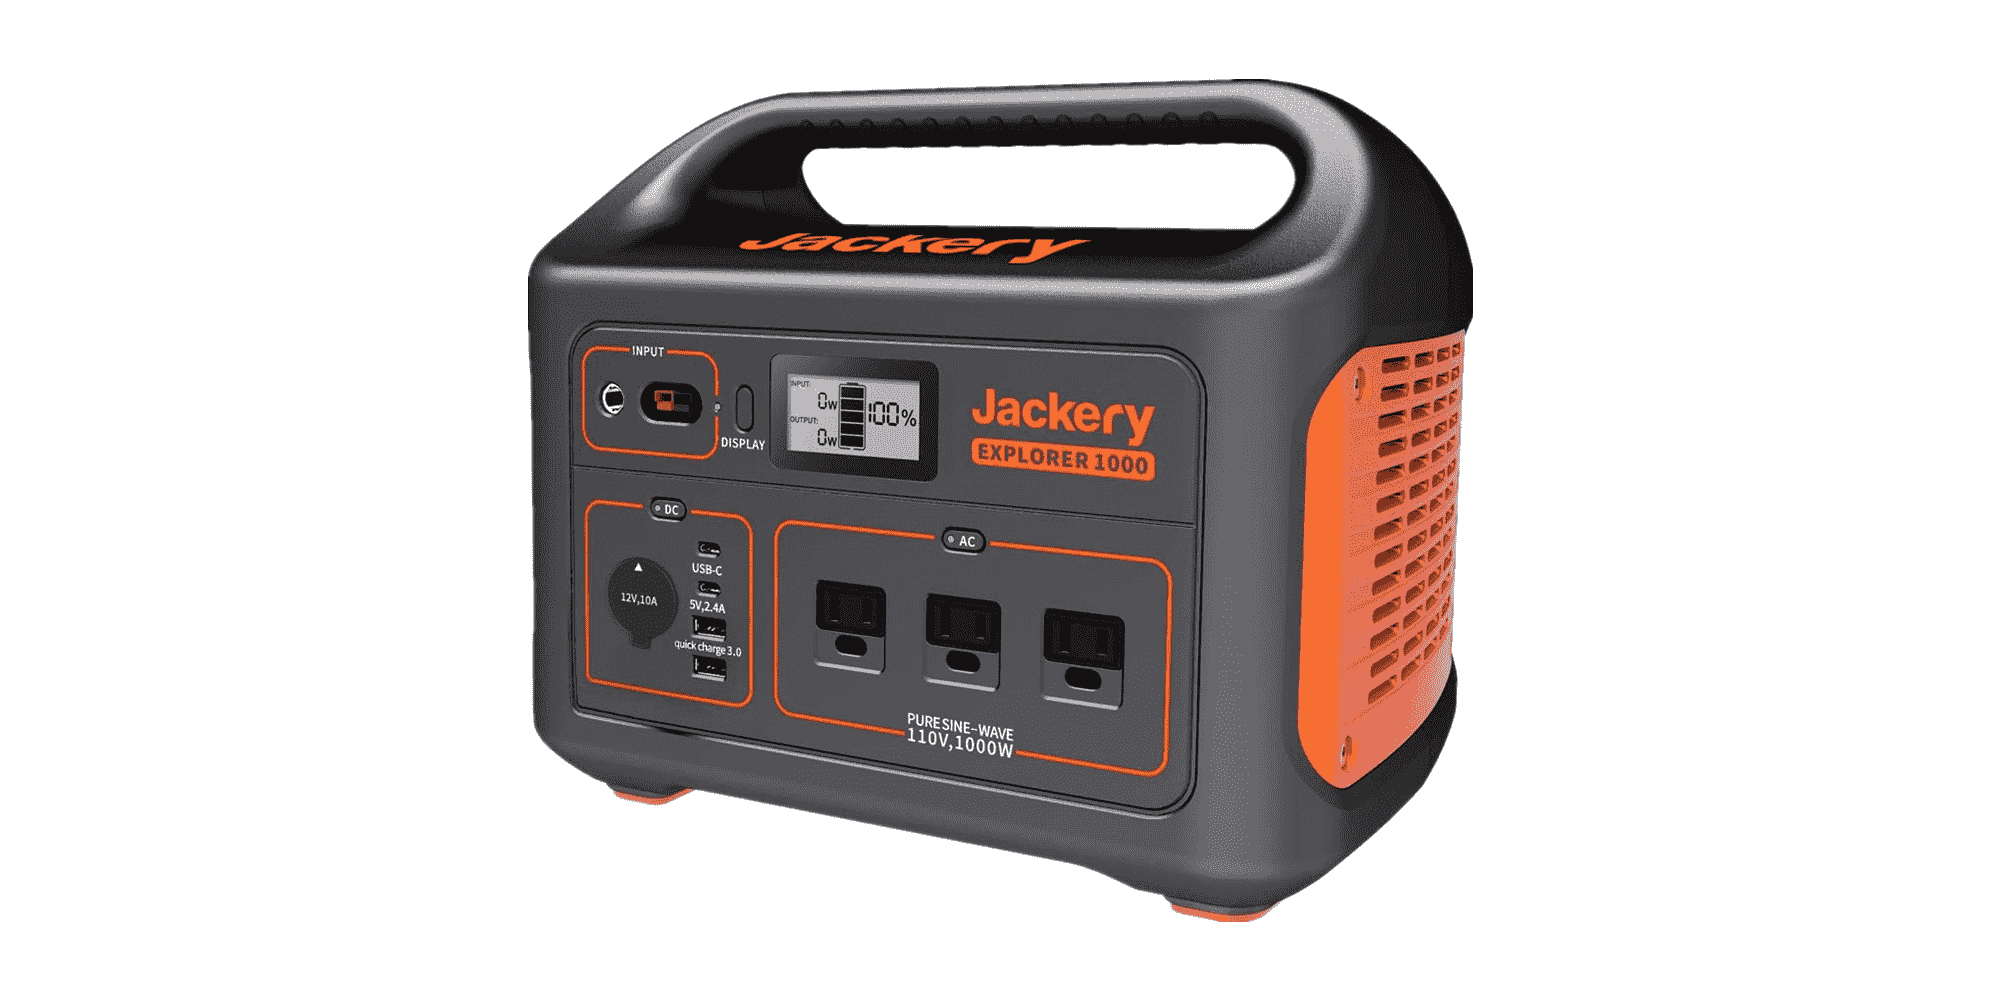 Jackery's solar generator system helps you collect and store more than enough juice for off-grid essentials 2